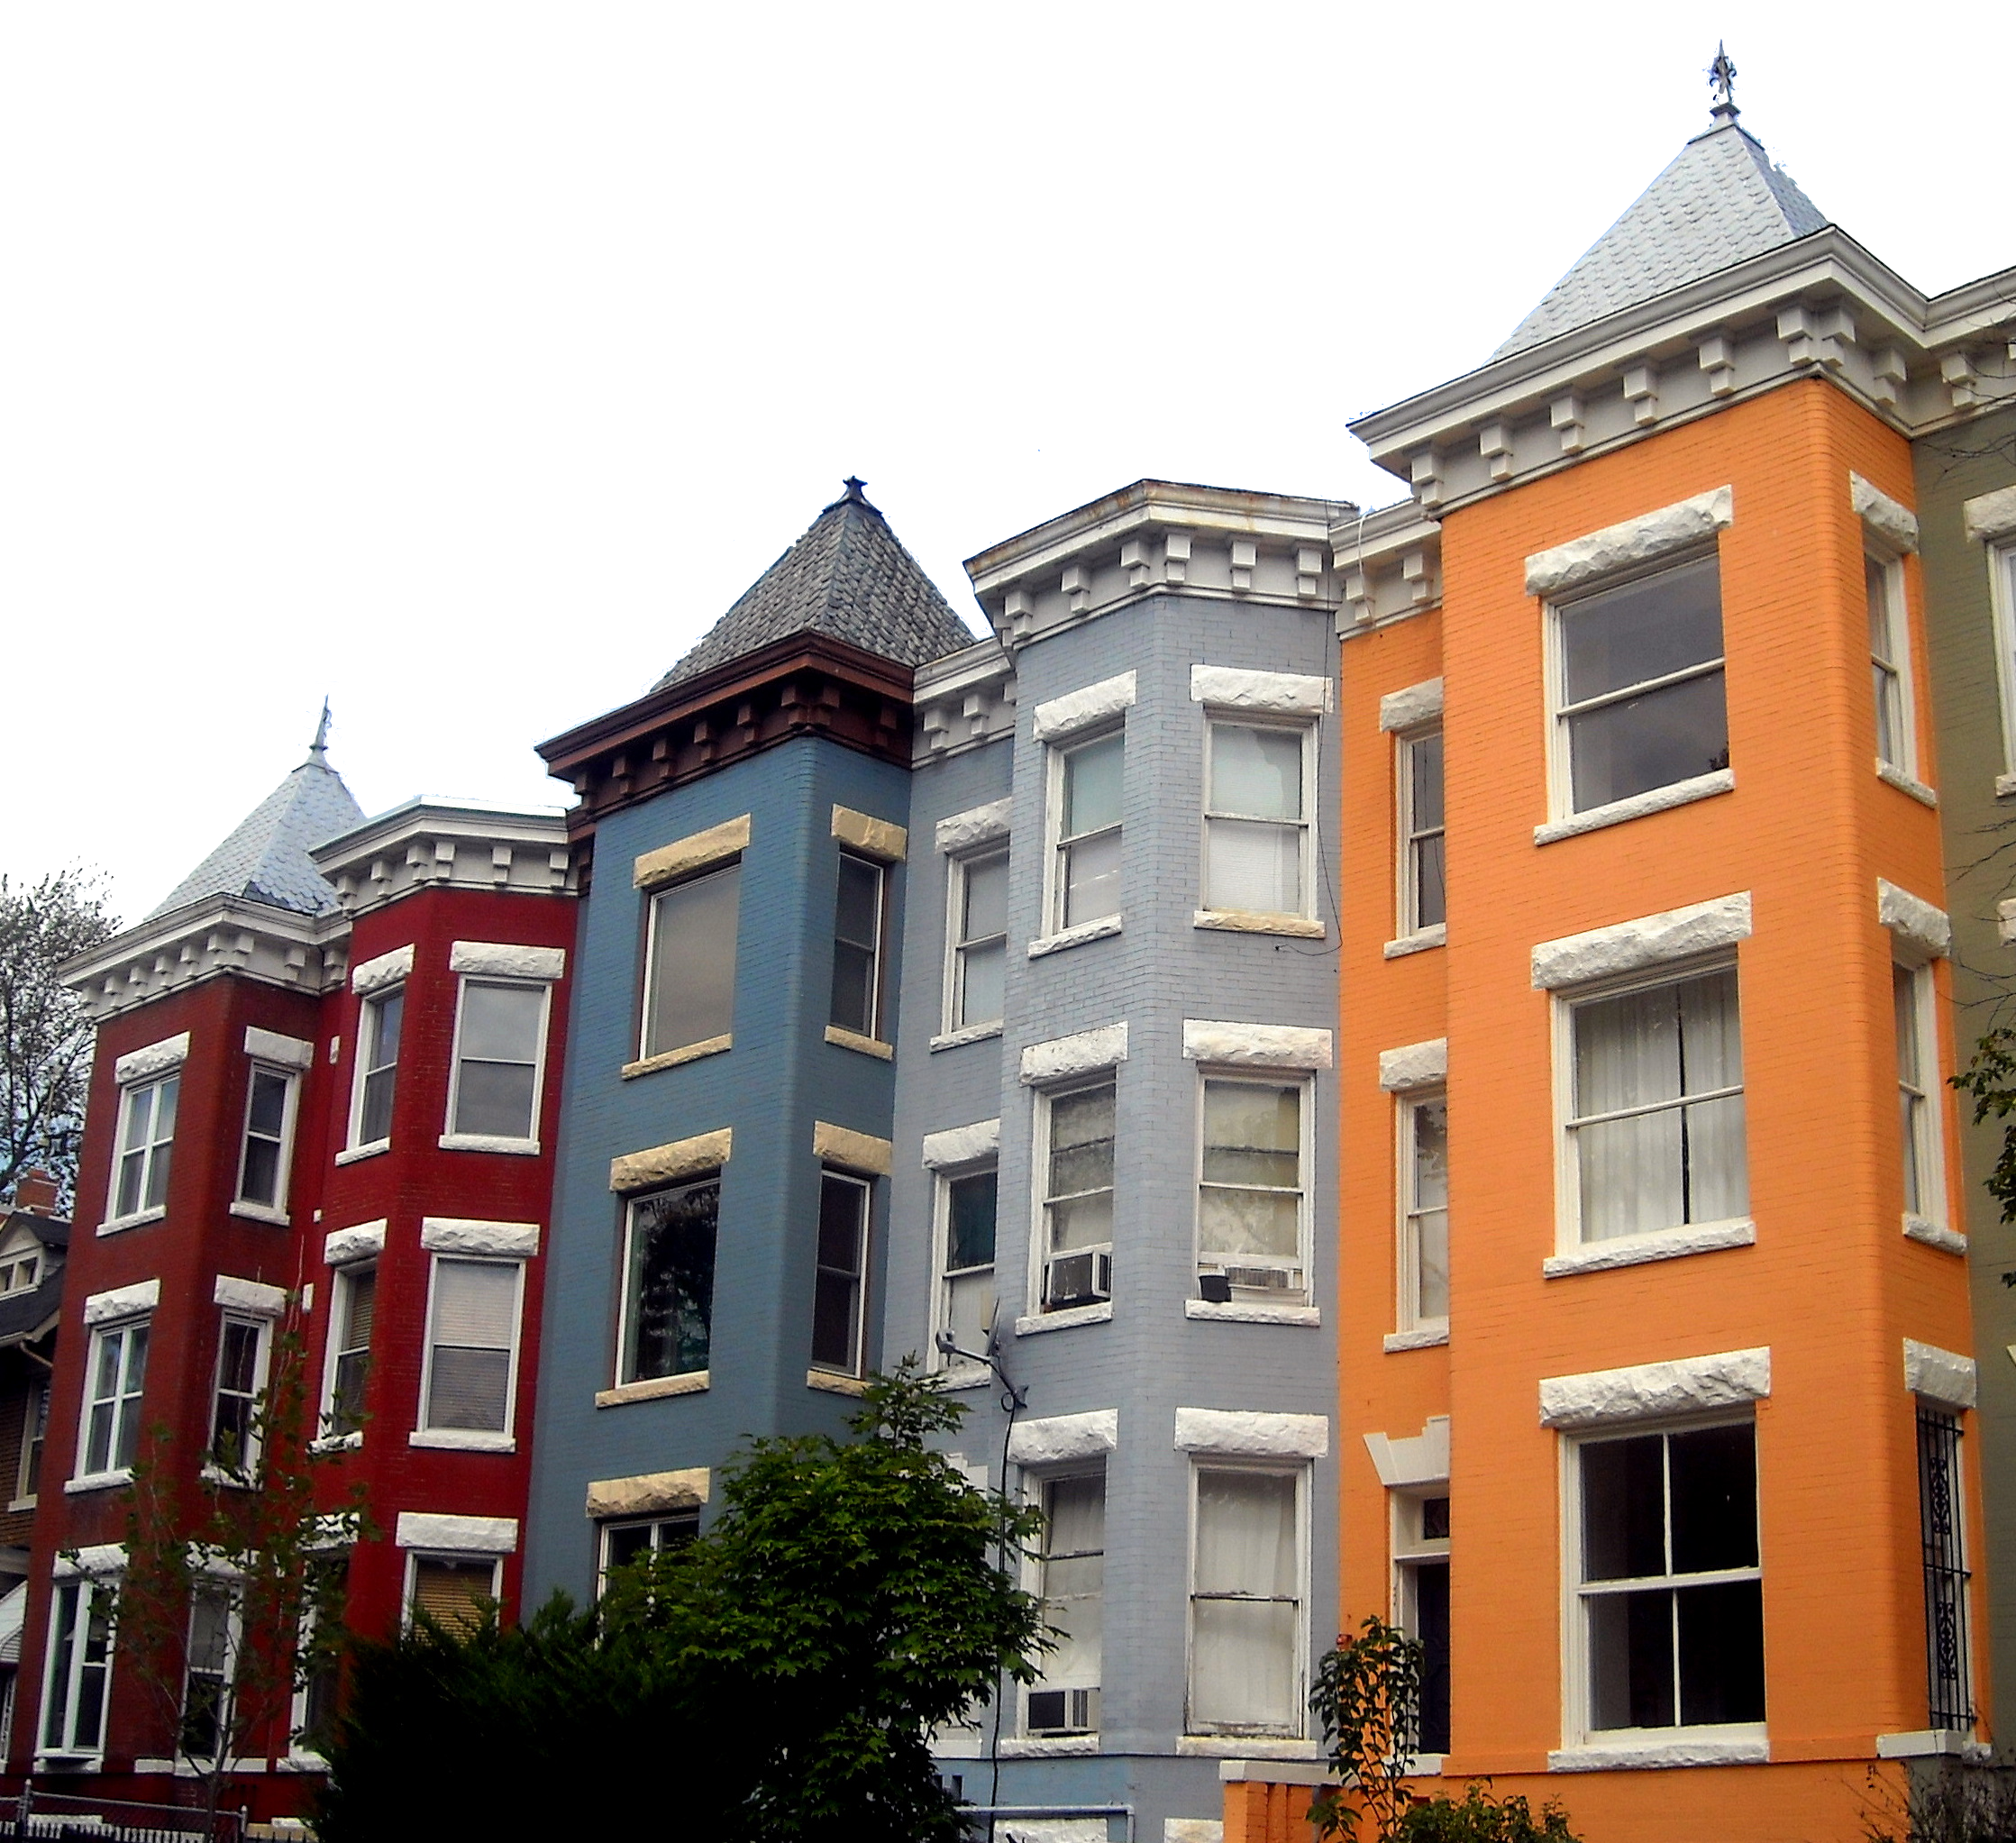 Transparent building row. Houses free images at